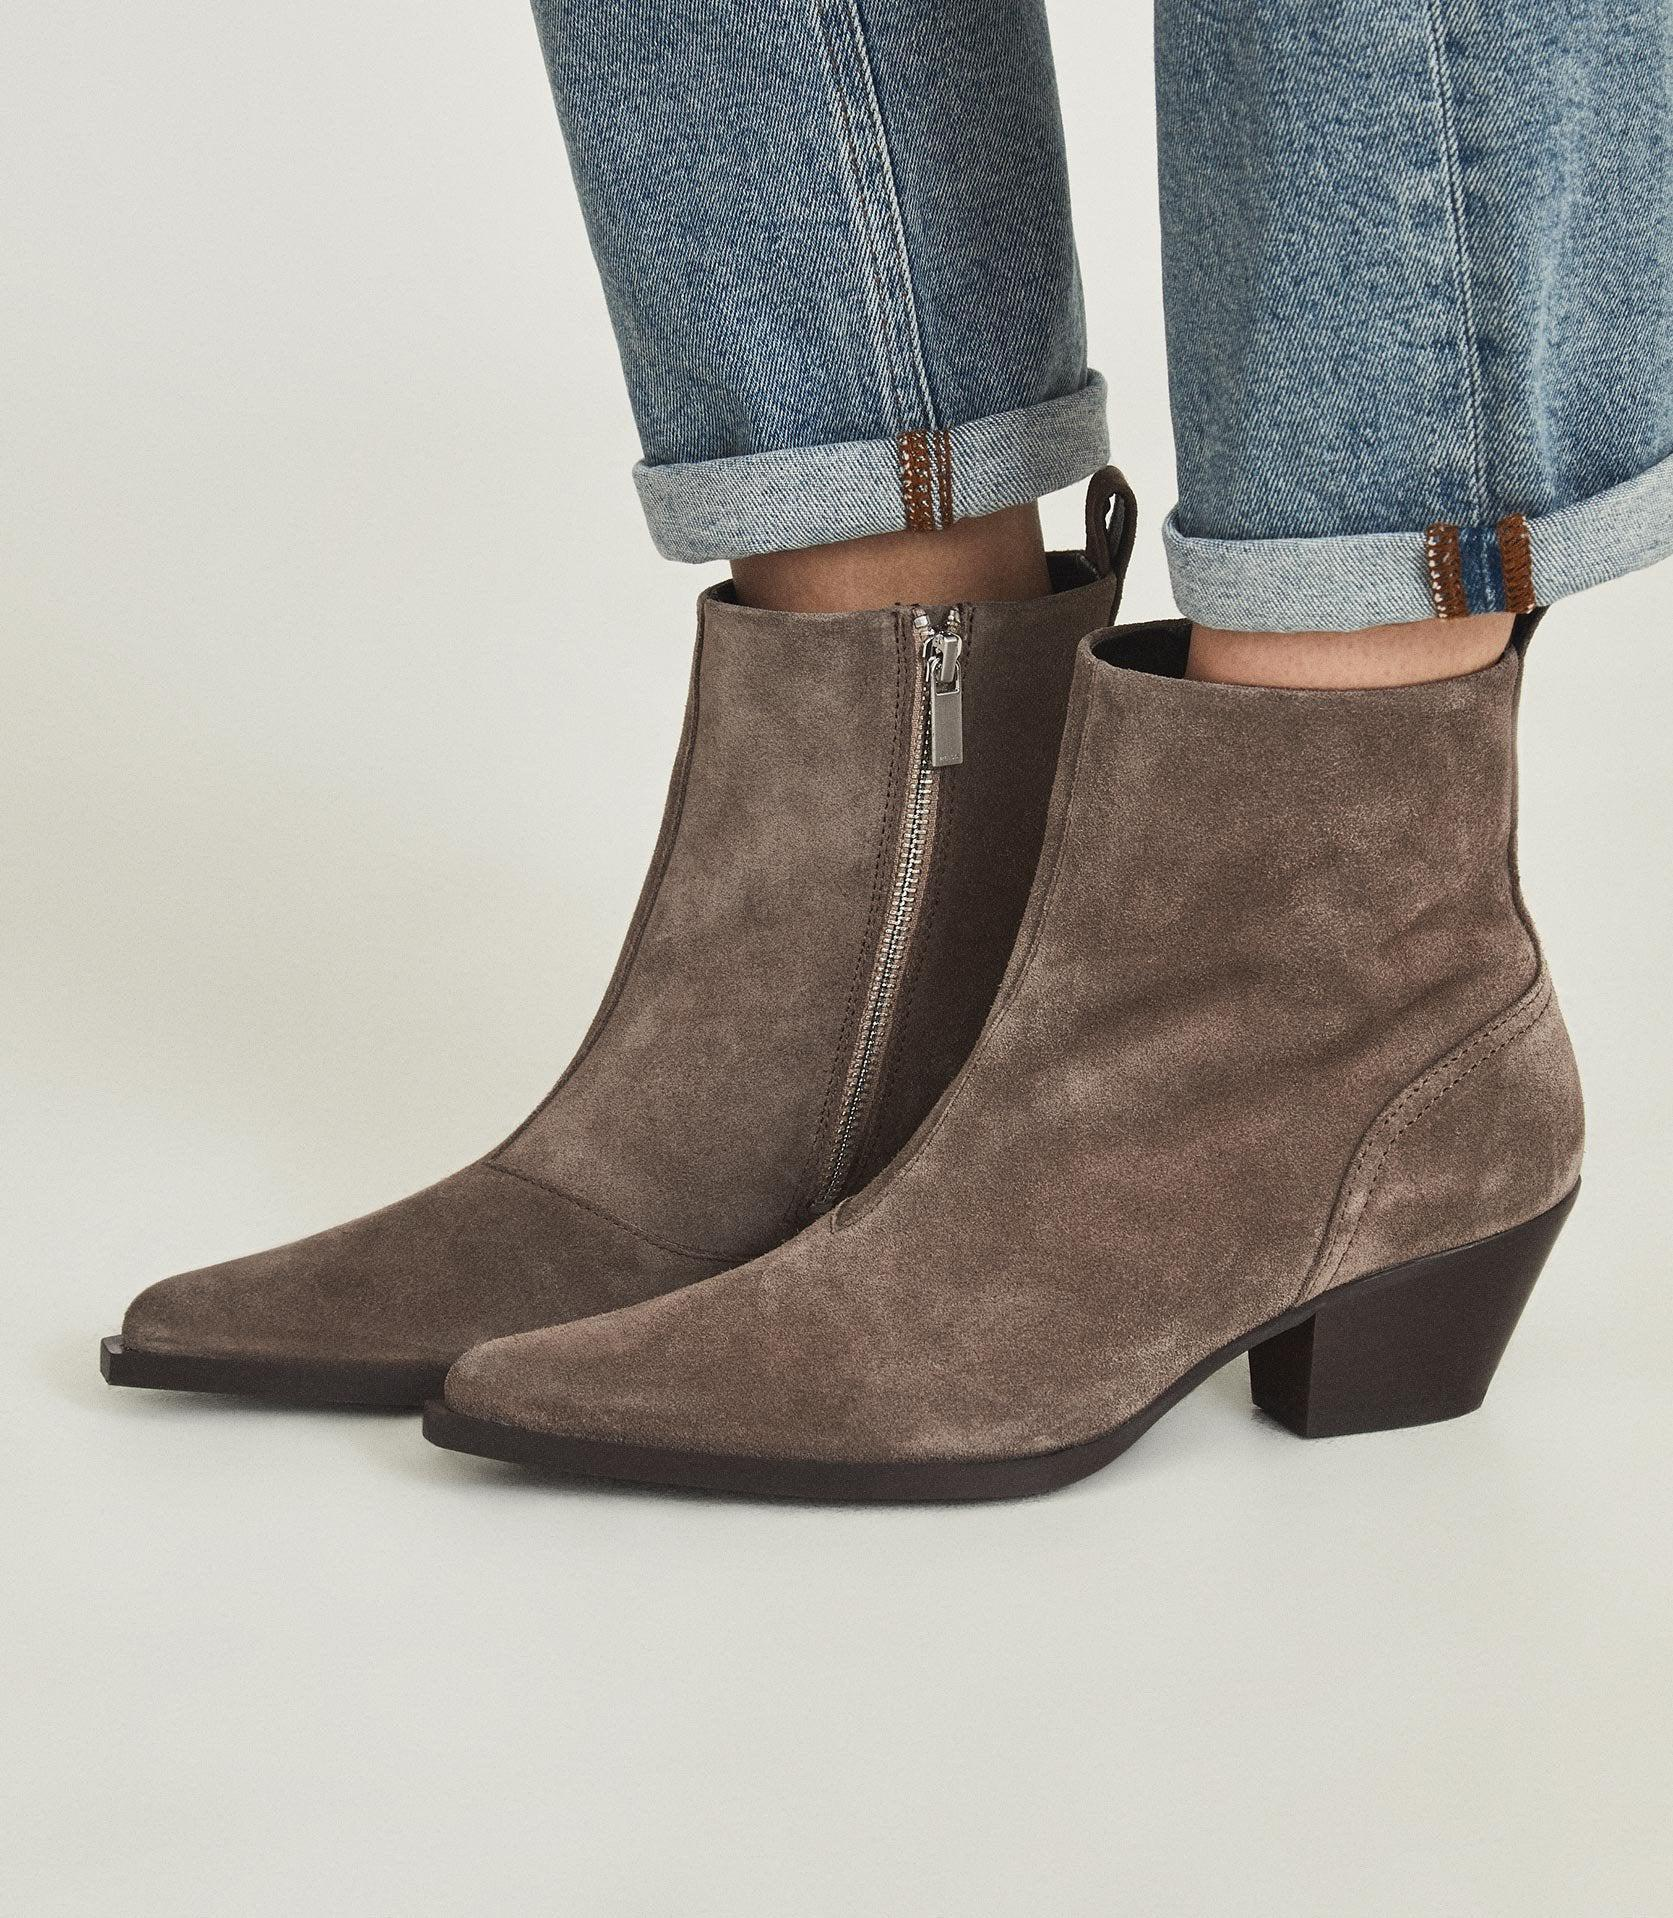 HAYWORTH SUEDE - SUEDE WESTERN ANKLE BOOTS 4